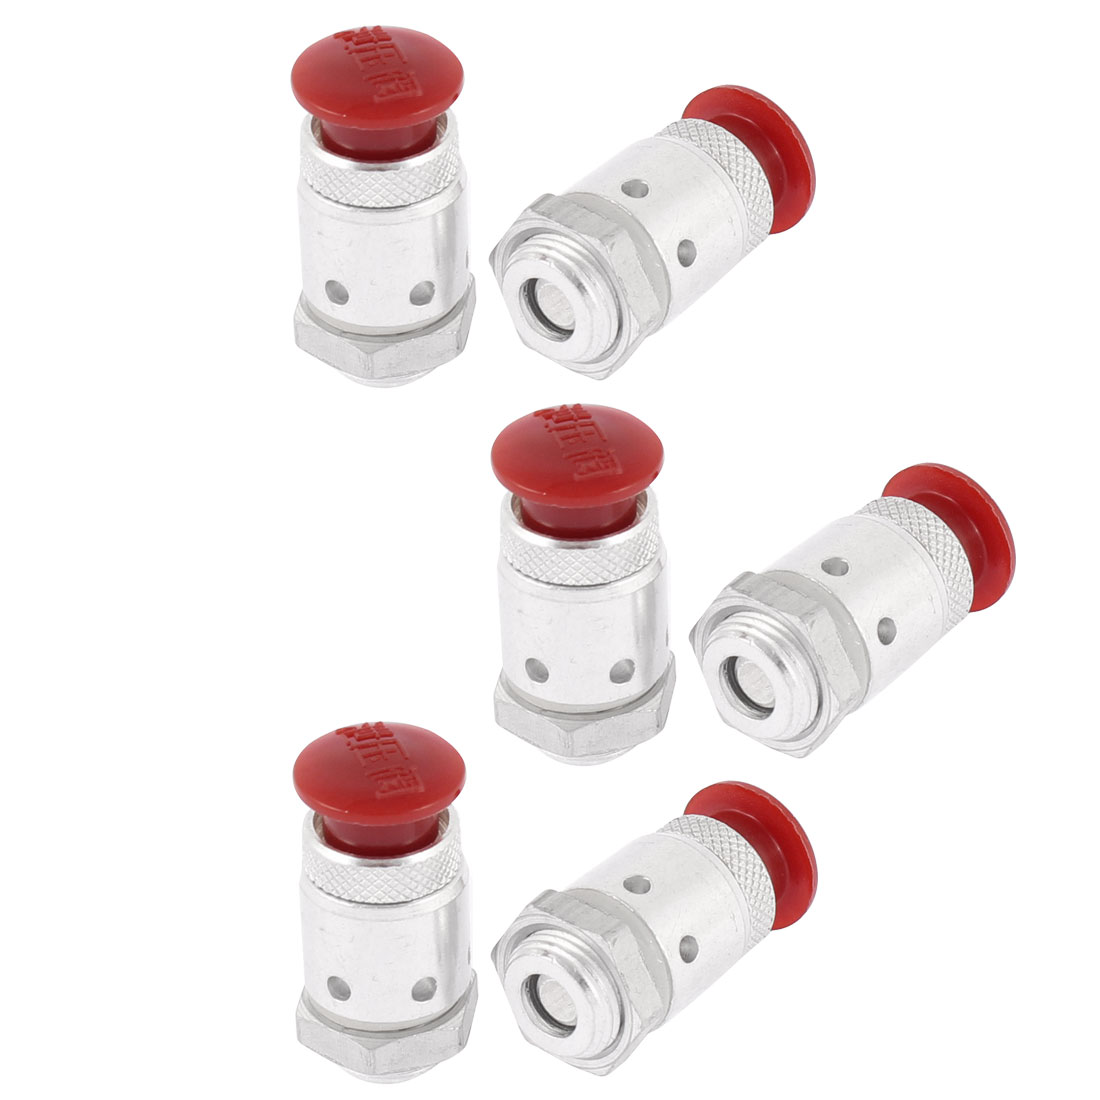 1/4BSP Thread Home Kitchen Pressure Cooker Safety Valve Fitting 6Pcs